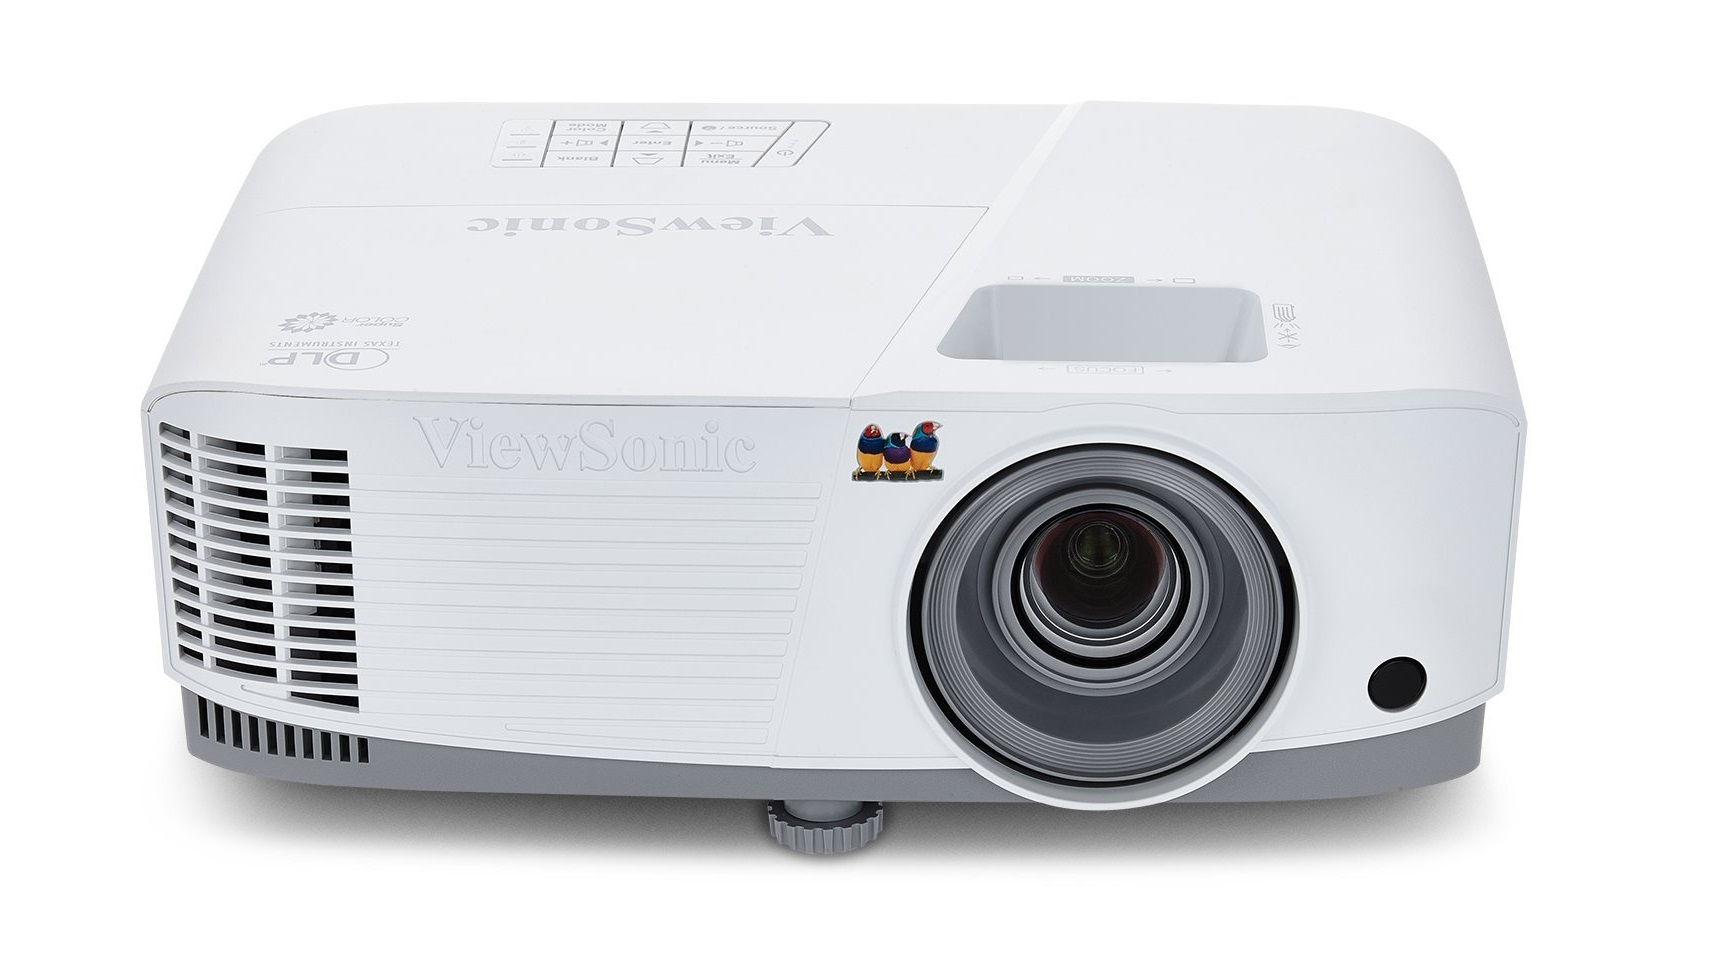 best business projectors 2018 8goUQ8EAMyRig39VPUsL